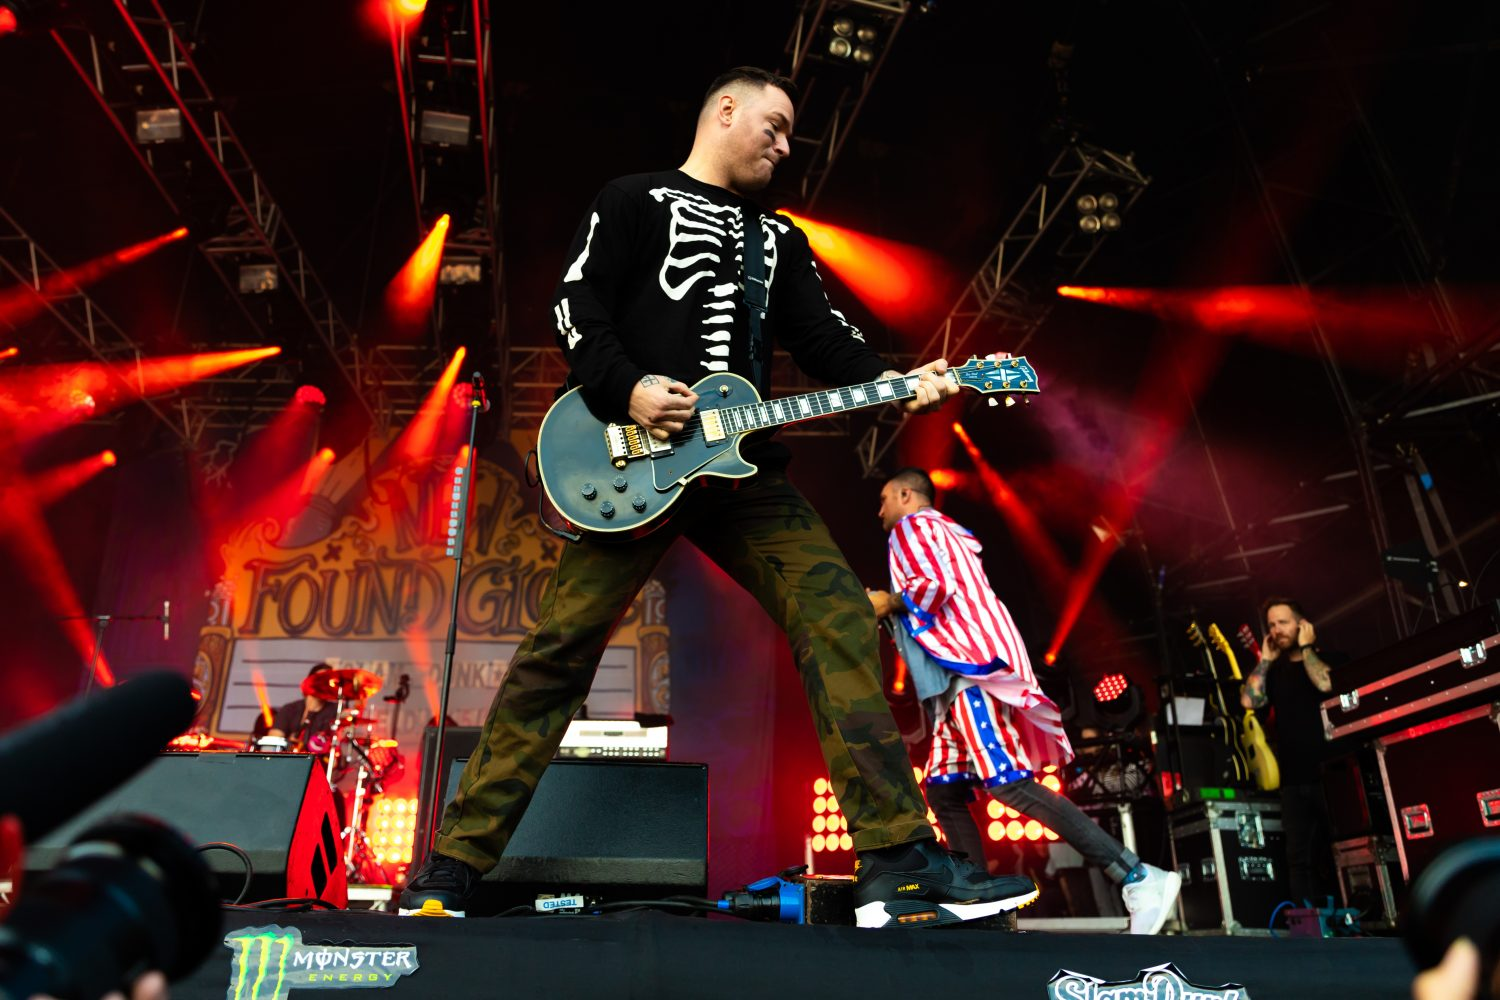 New Found Glory at Slam Dunk looked more or less exactly like this